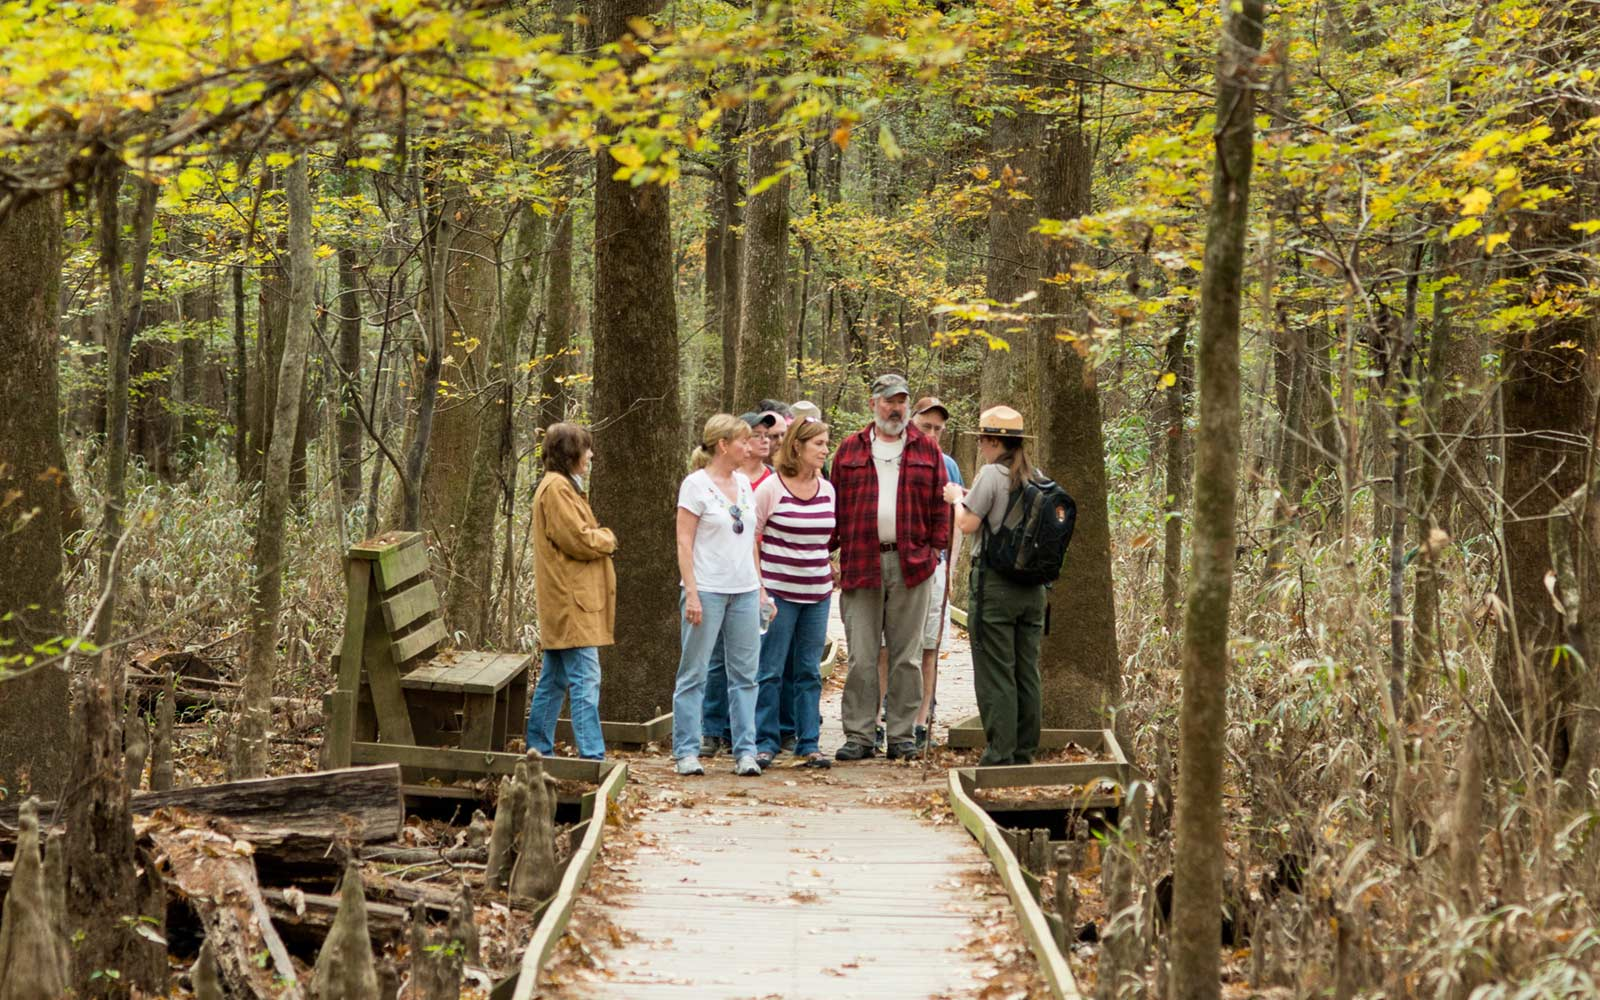 Nature Discovery Walk, Congaree National Park, South Carolina